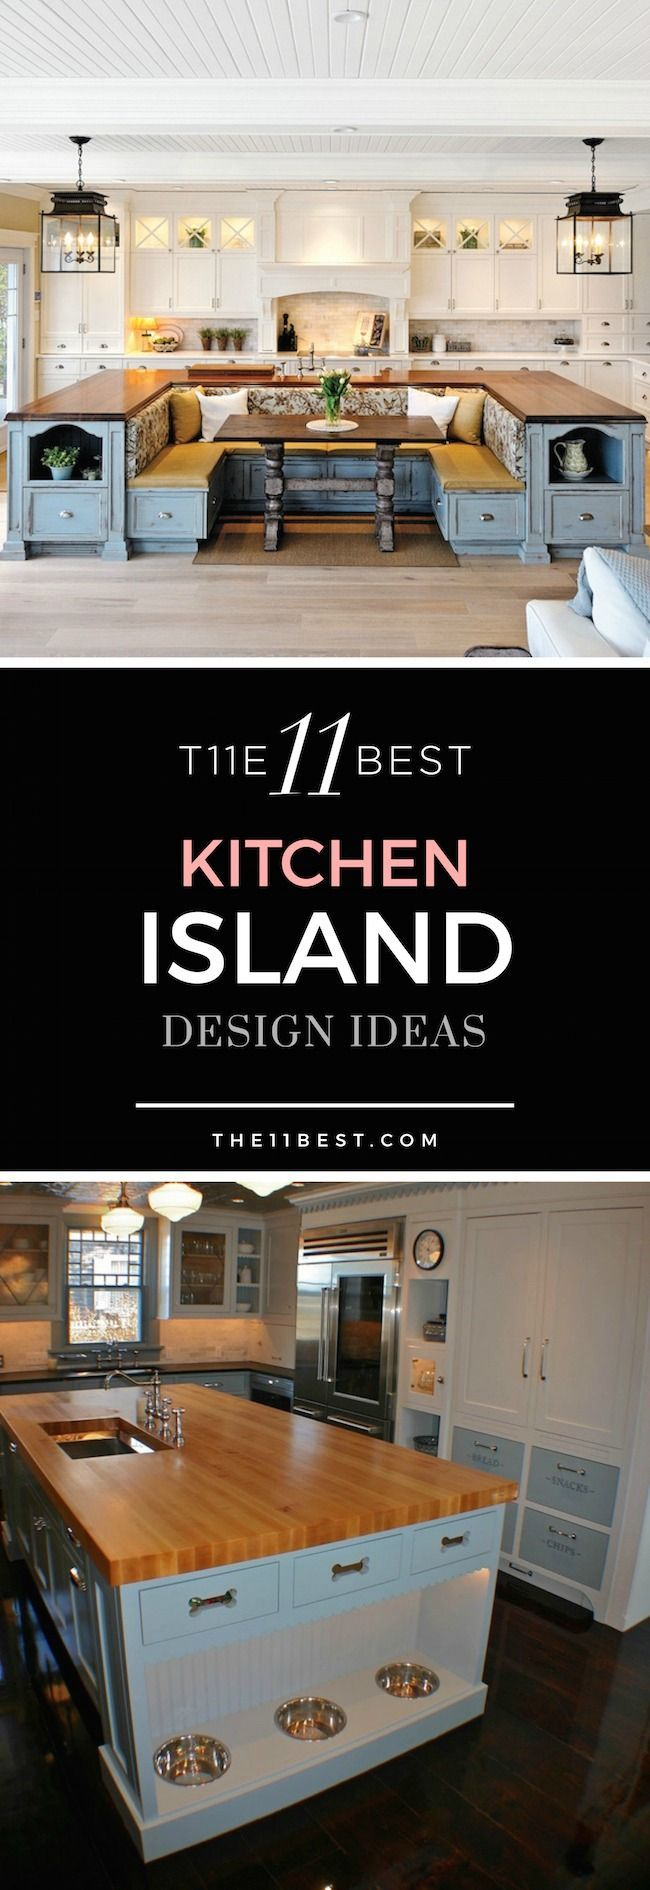 1000+ ideas about Kitchen Designs on Pinterest Kitchens, Faucets ... - ^